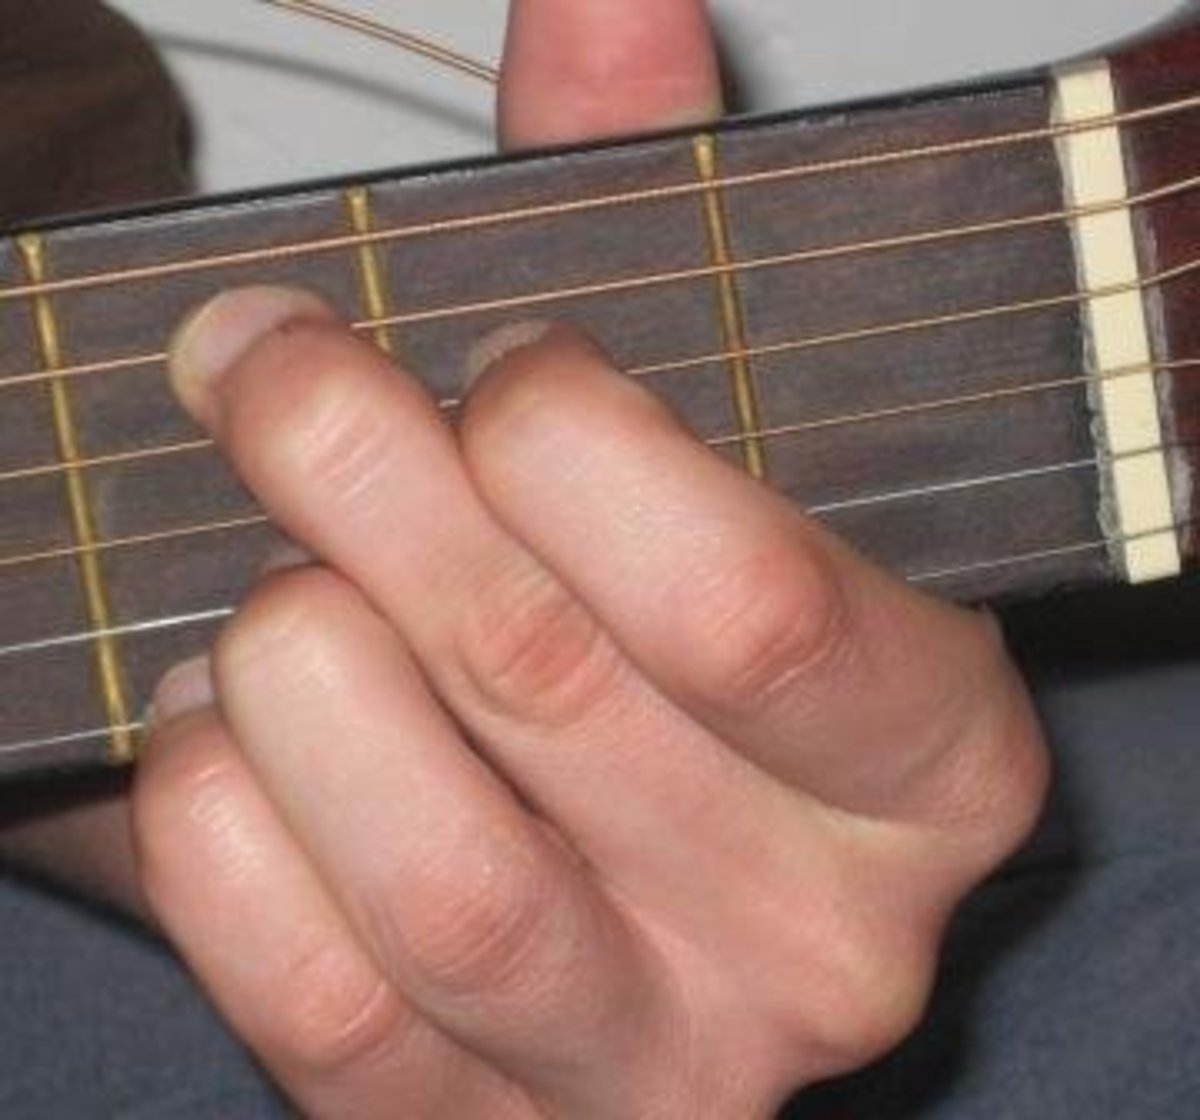 Second C chord.